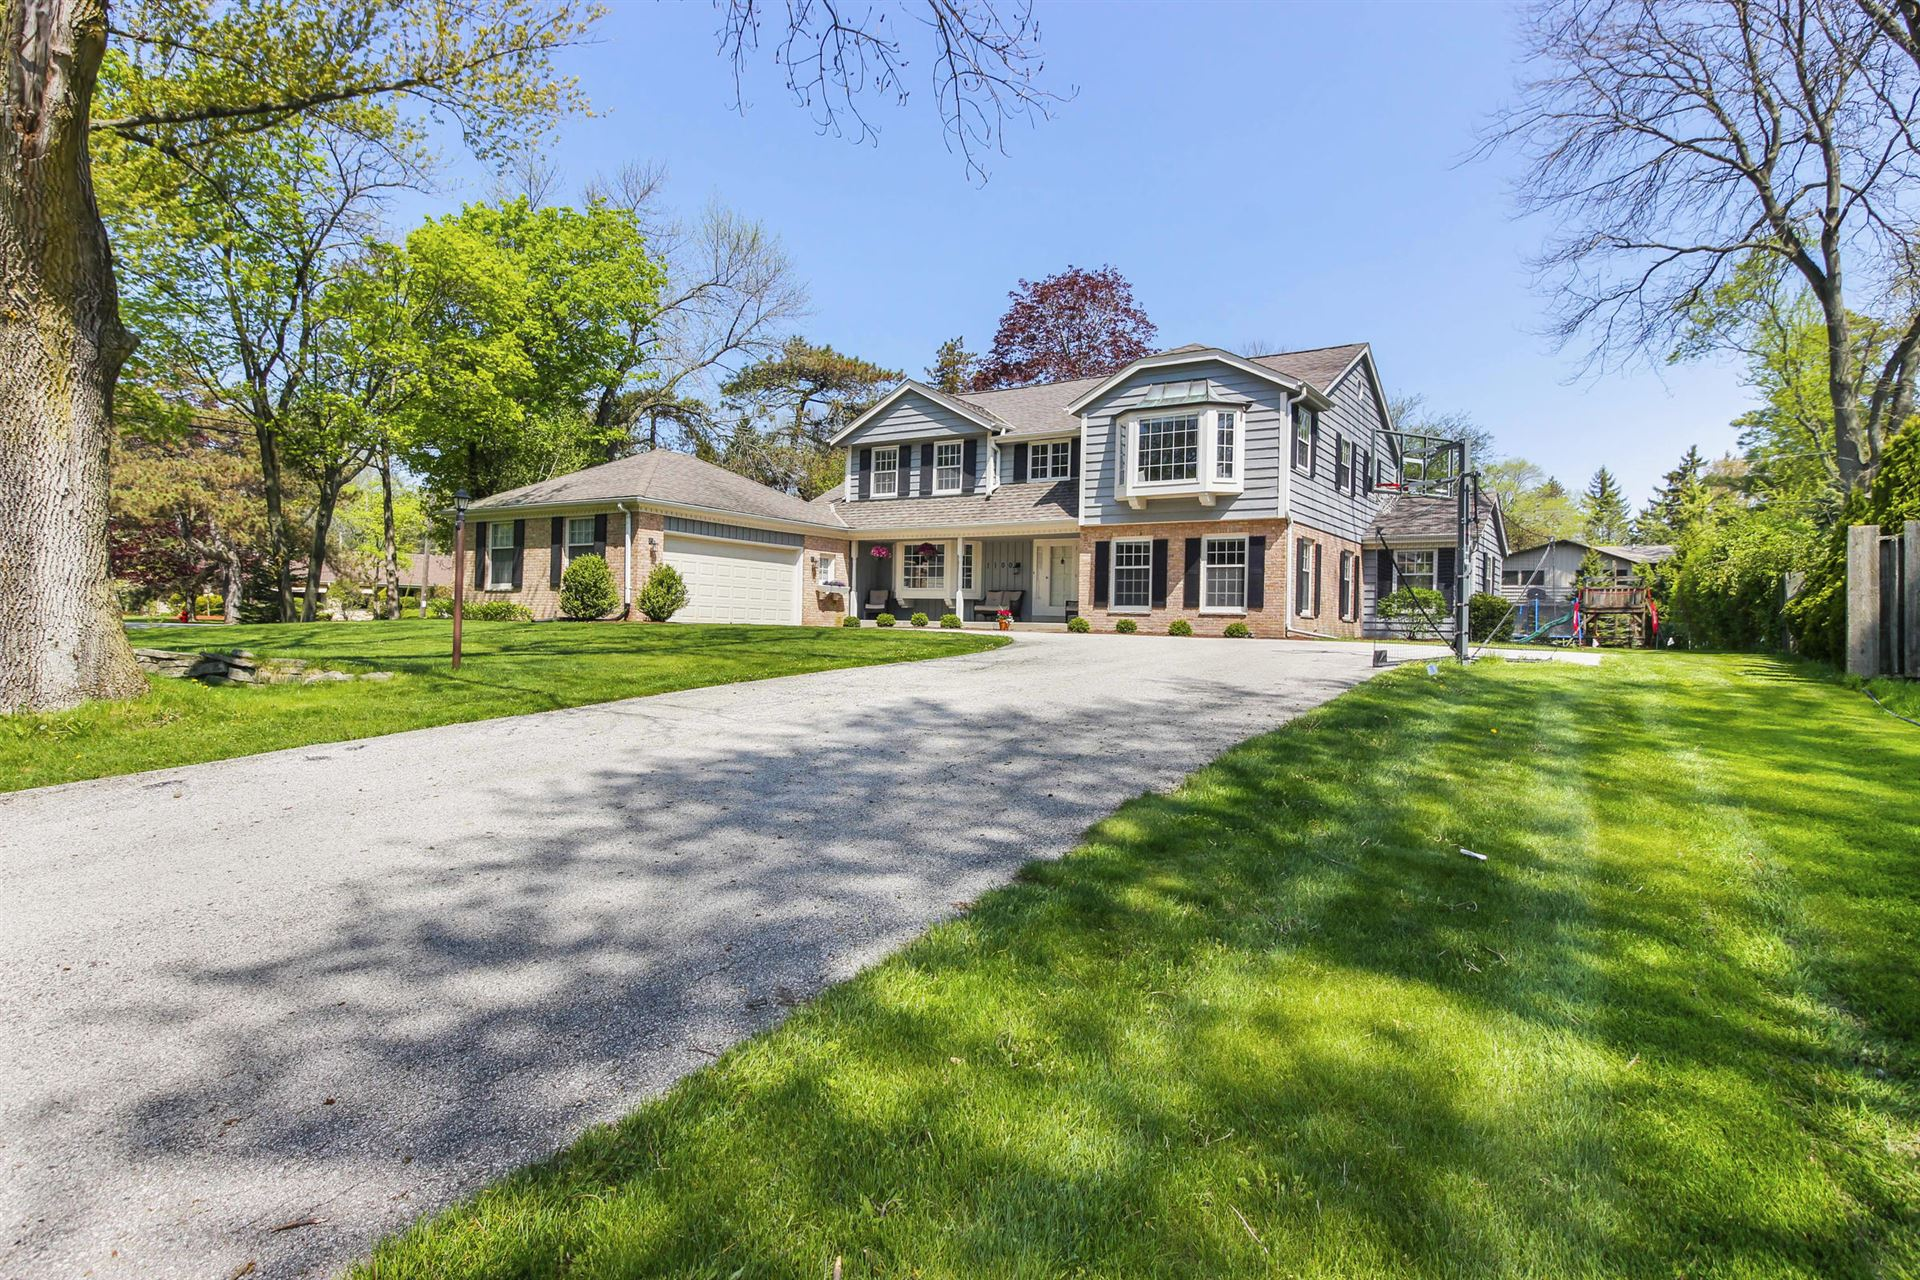 1100 E Donges Ct, Bayside, WI 53217 - #: 1690853